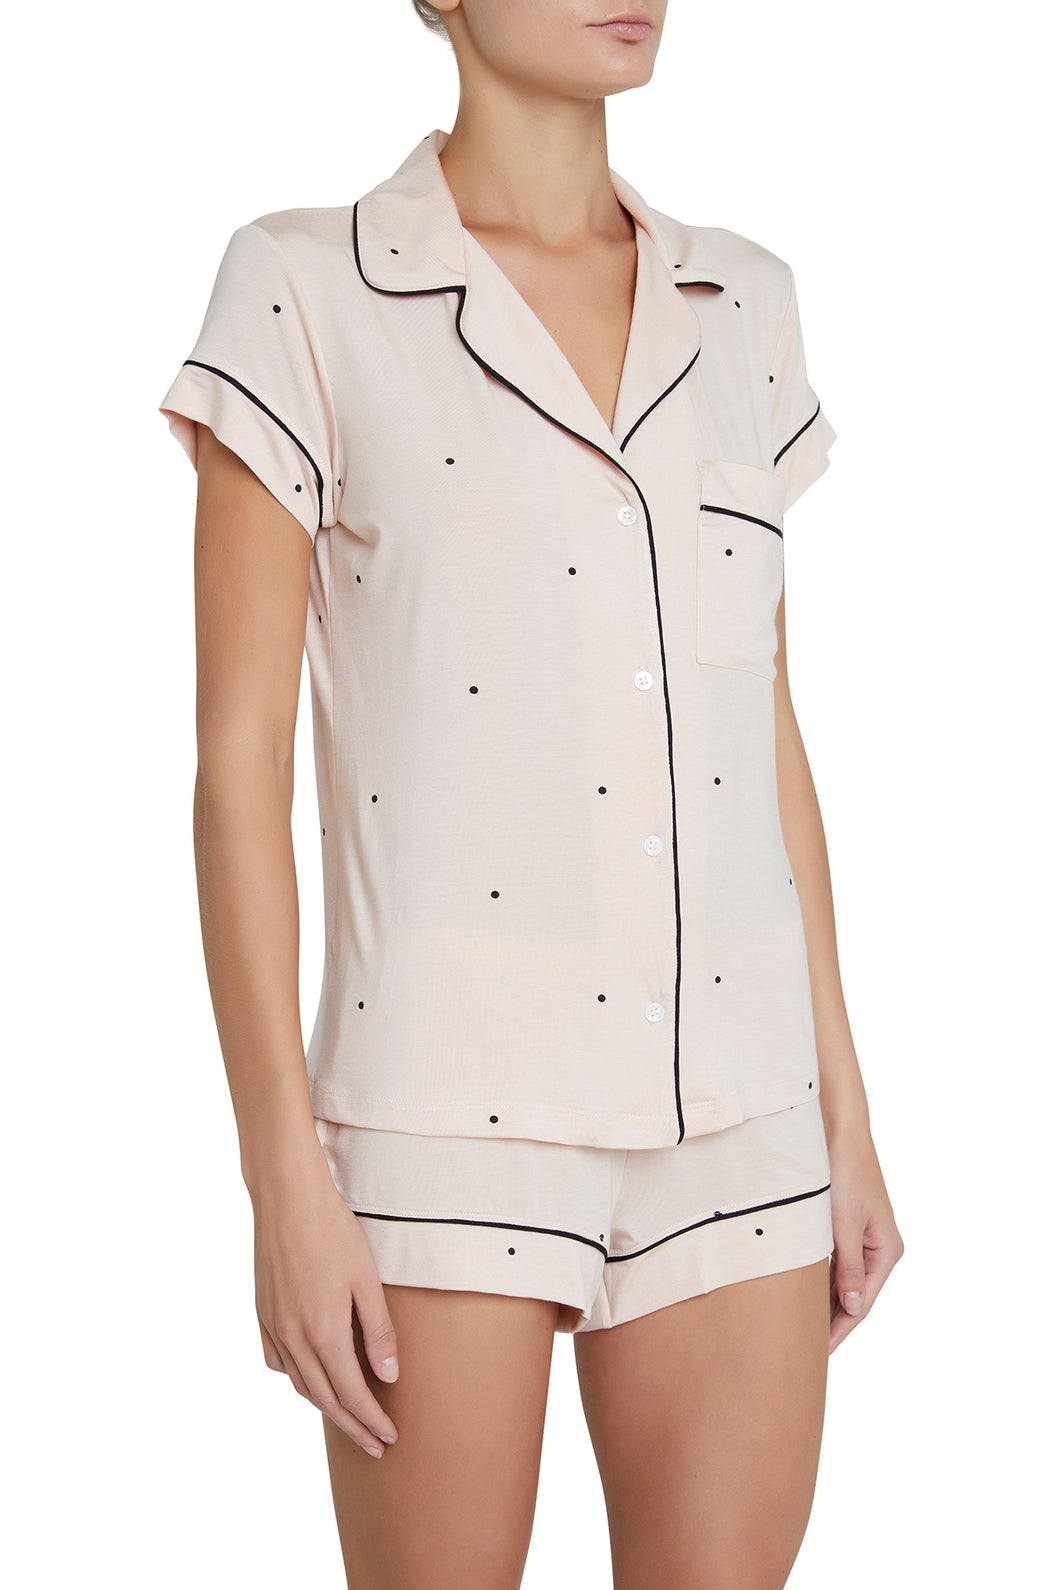 Eberjey: Gisele Short Sleeve, Shorts set - Pink Tint/Black Dot